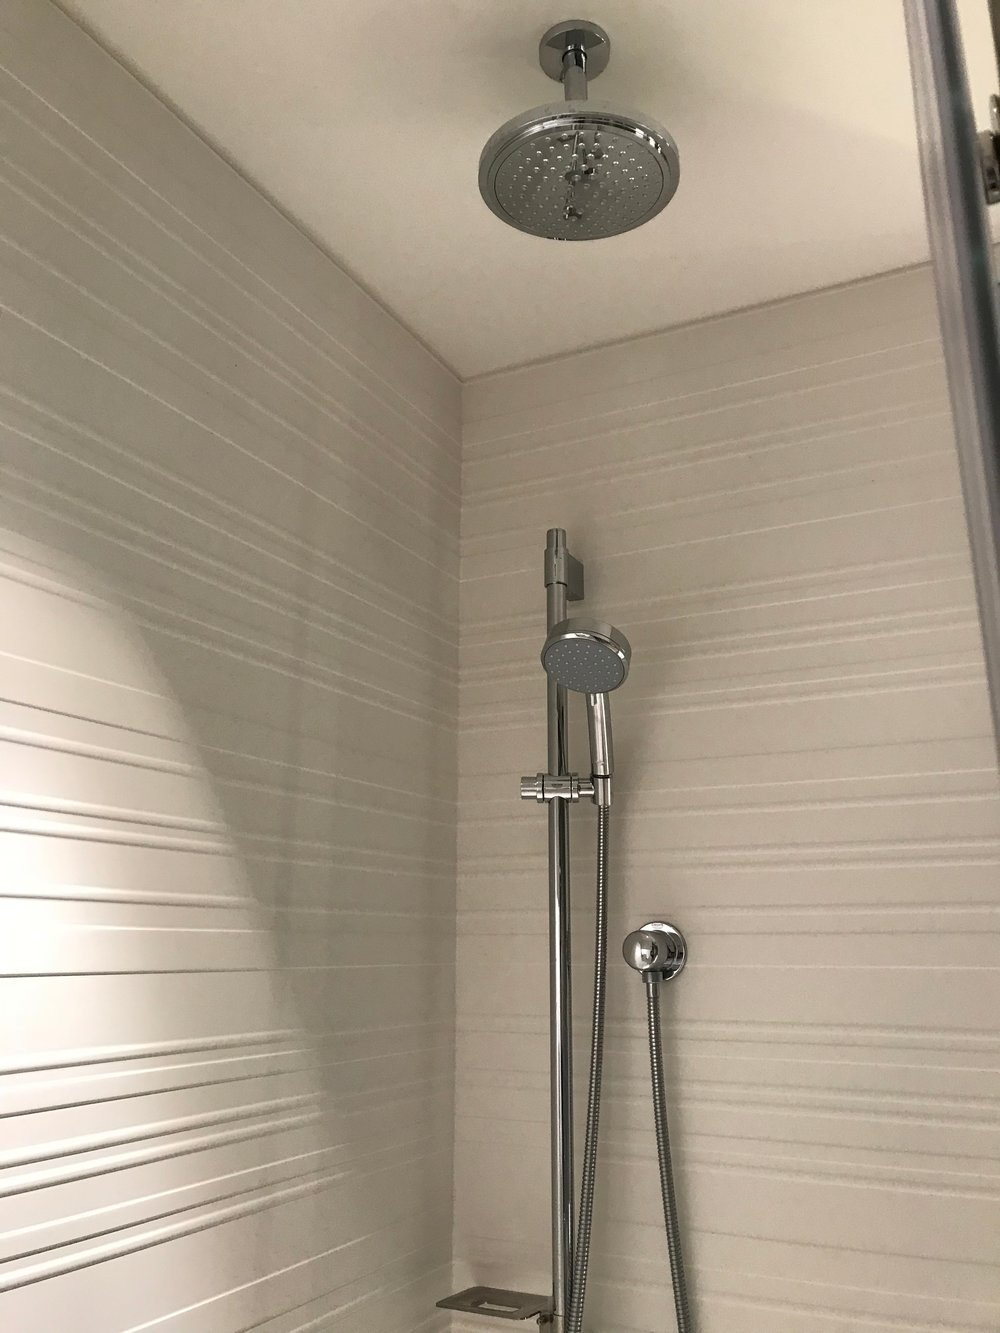 Ceiling-mounted rain shower and adjustable wall-mounted shower head